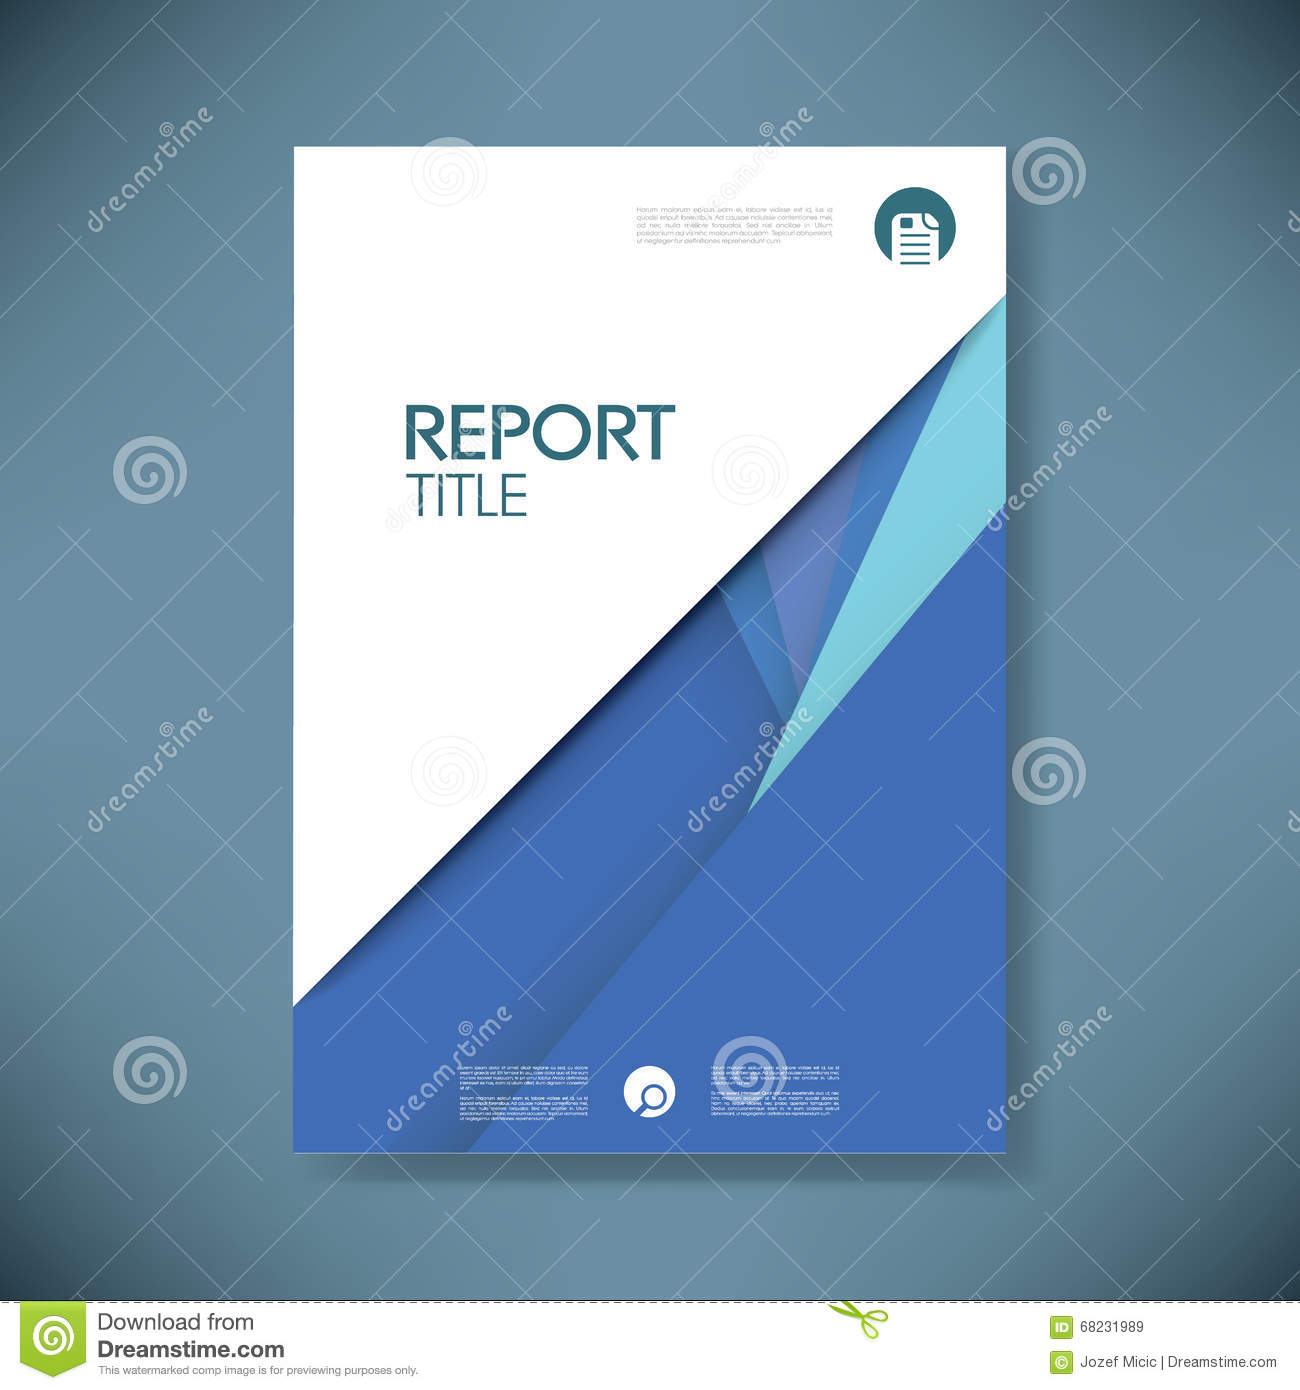 annual business report cover template modern material design annual report cover template on material design style vector background royalty stock images